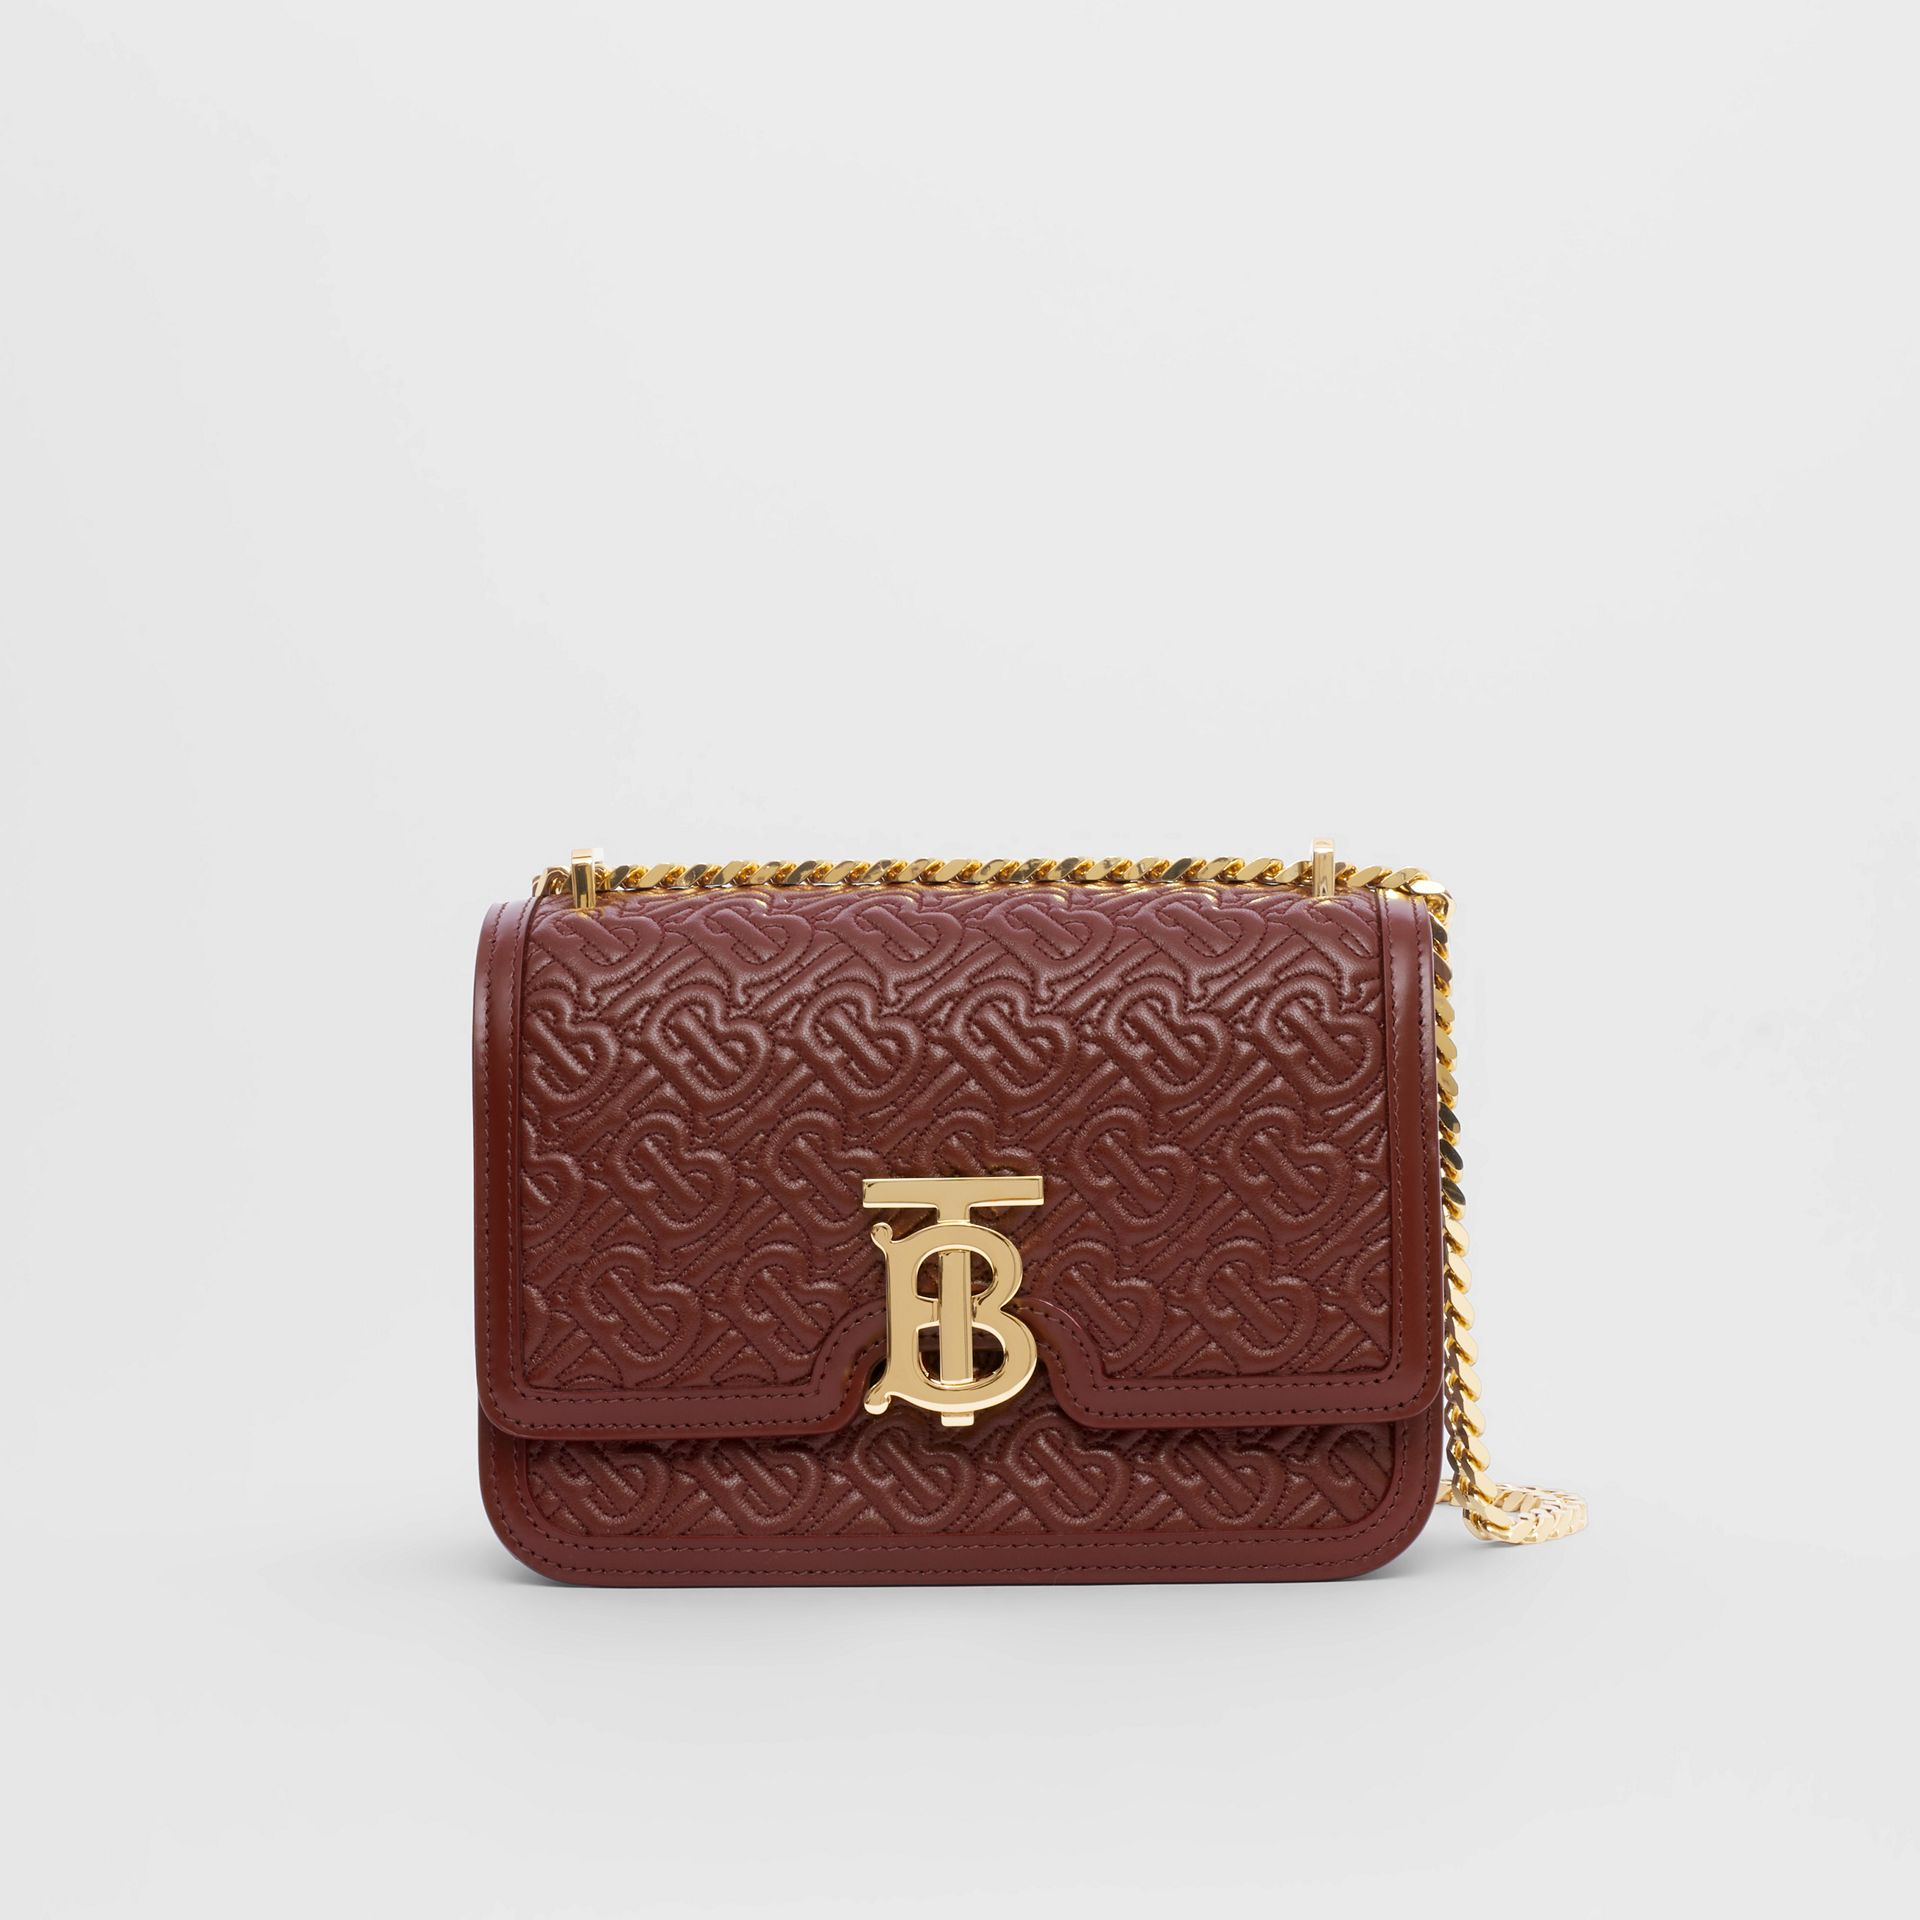 Small Quilted Monogram Lambskin TB Bag in Oxblood - Women | Burberry United Kingdom - gallery image 0